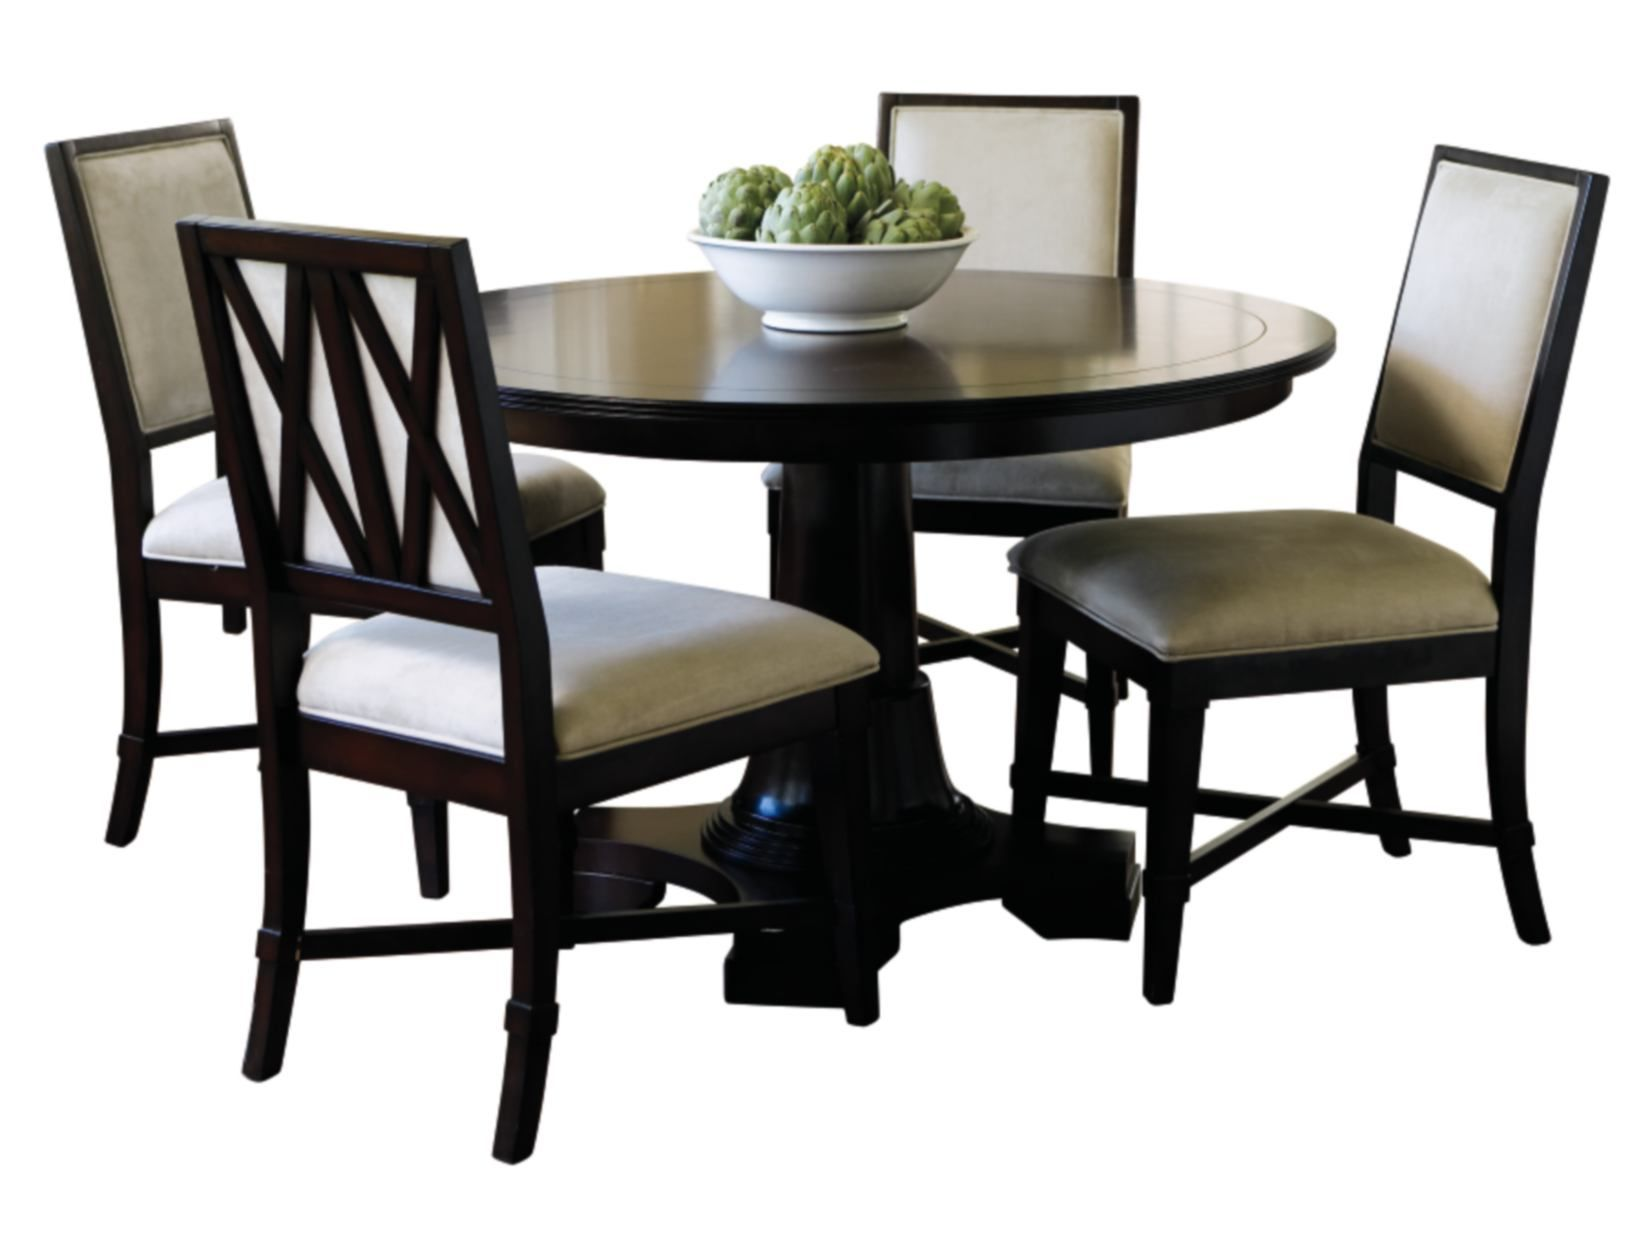 Urban Living 5 Pc Round Dinette Value City Furniture American Signature Furniture Dinette Value City Furniture